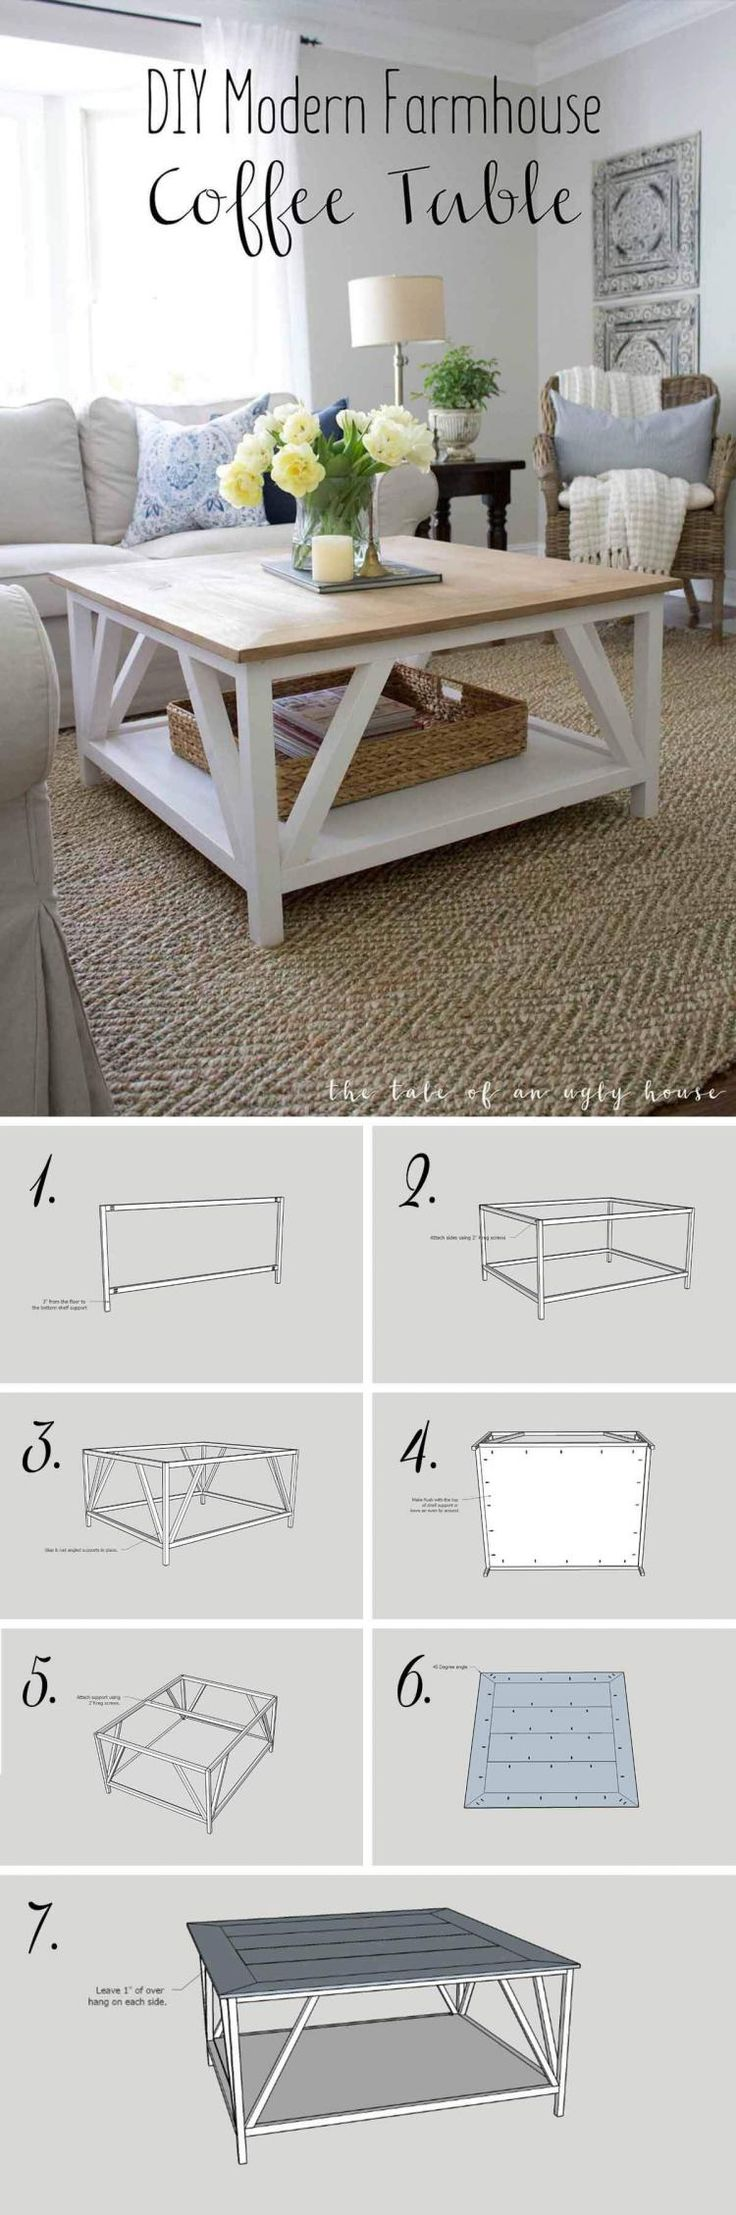 25 Creative Coffee Tables Farmhouse Design Ideas